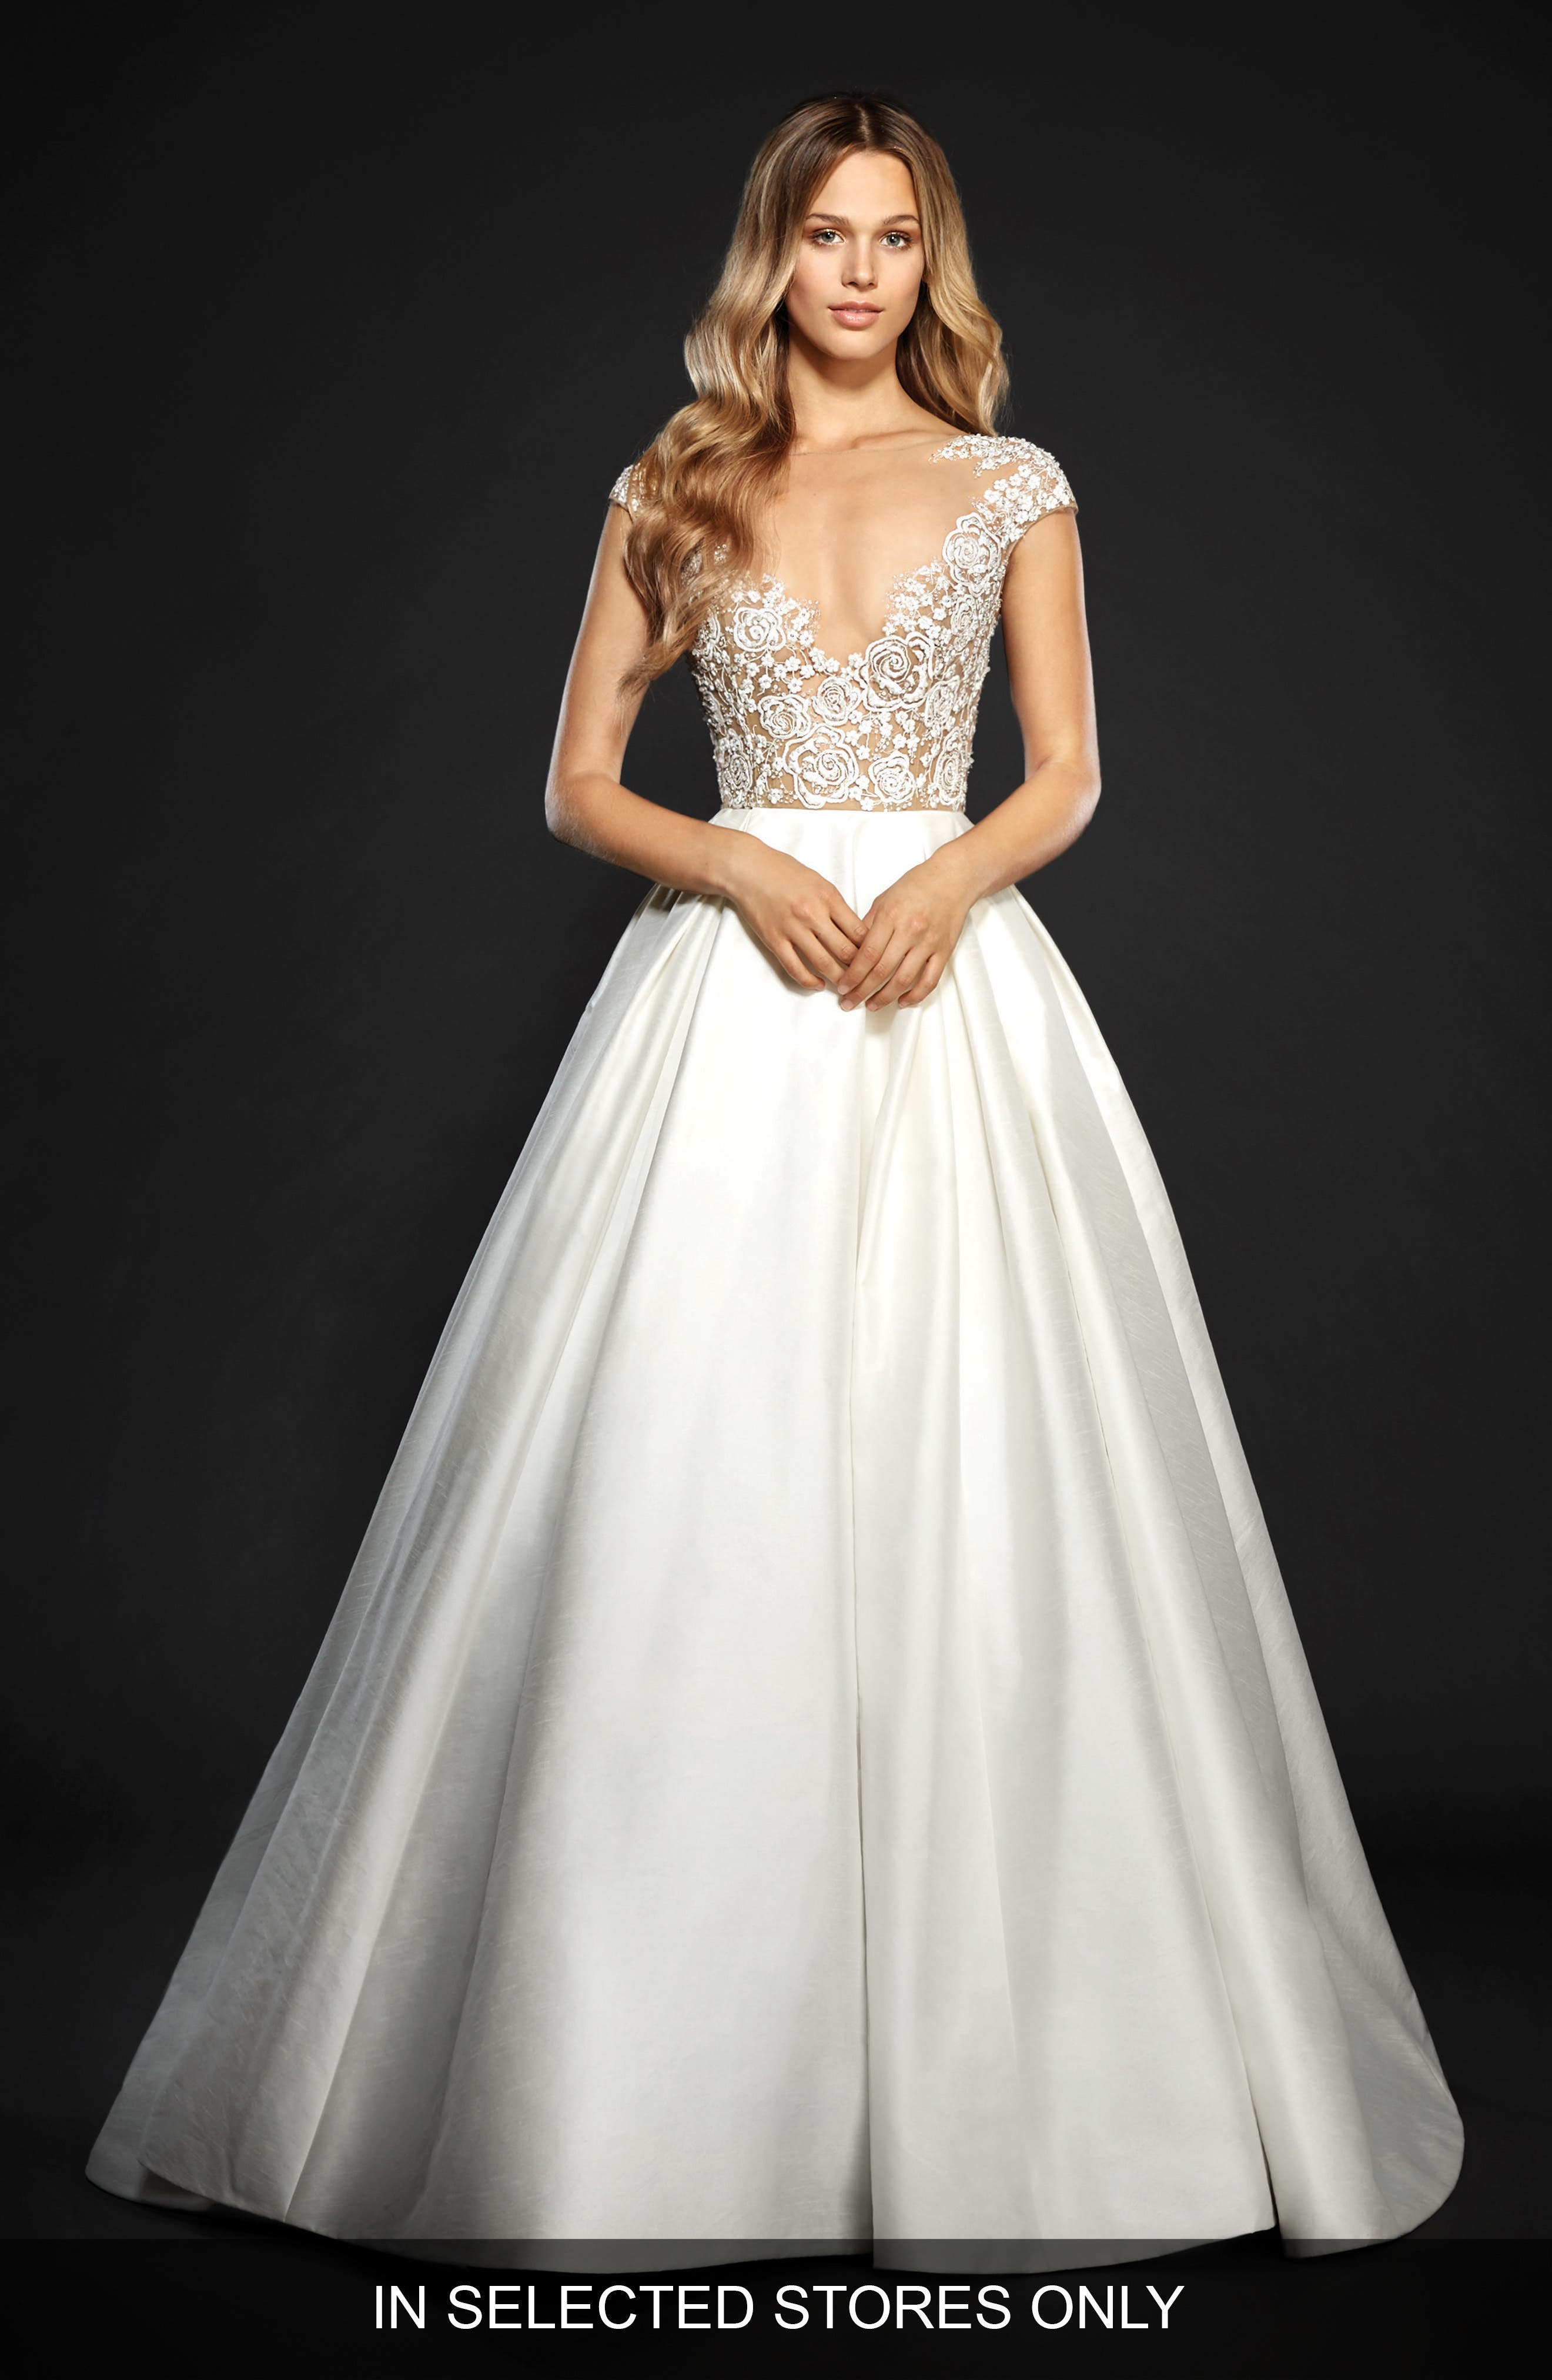 Chandler Floral Embroidered Illusion Ballgown,                         Main,                         color, IVORY